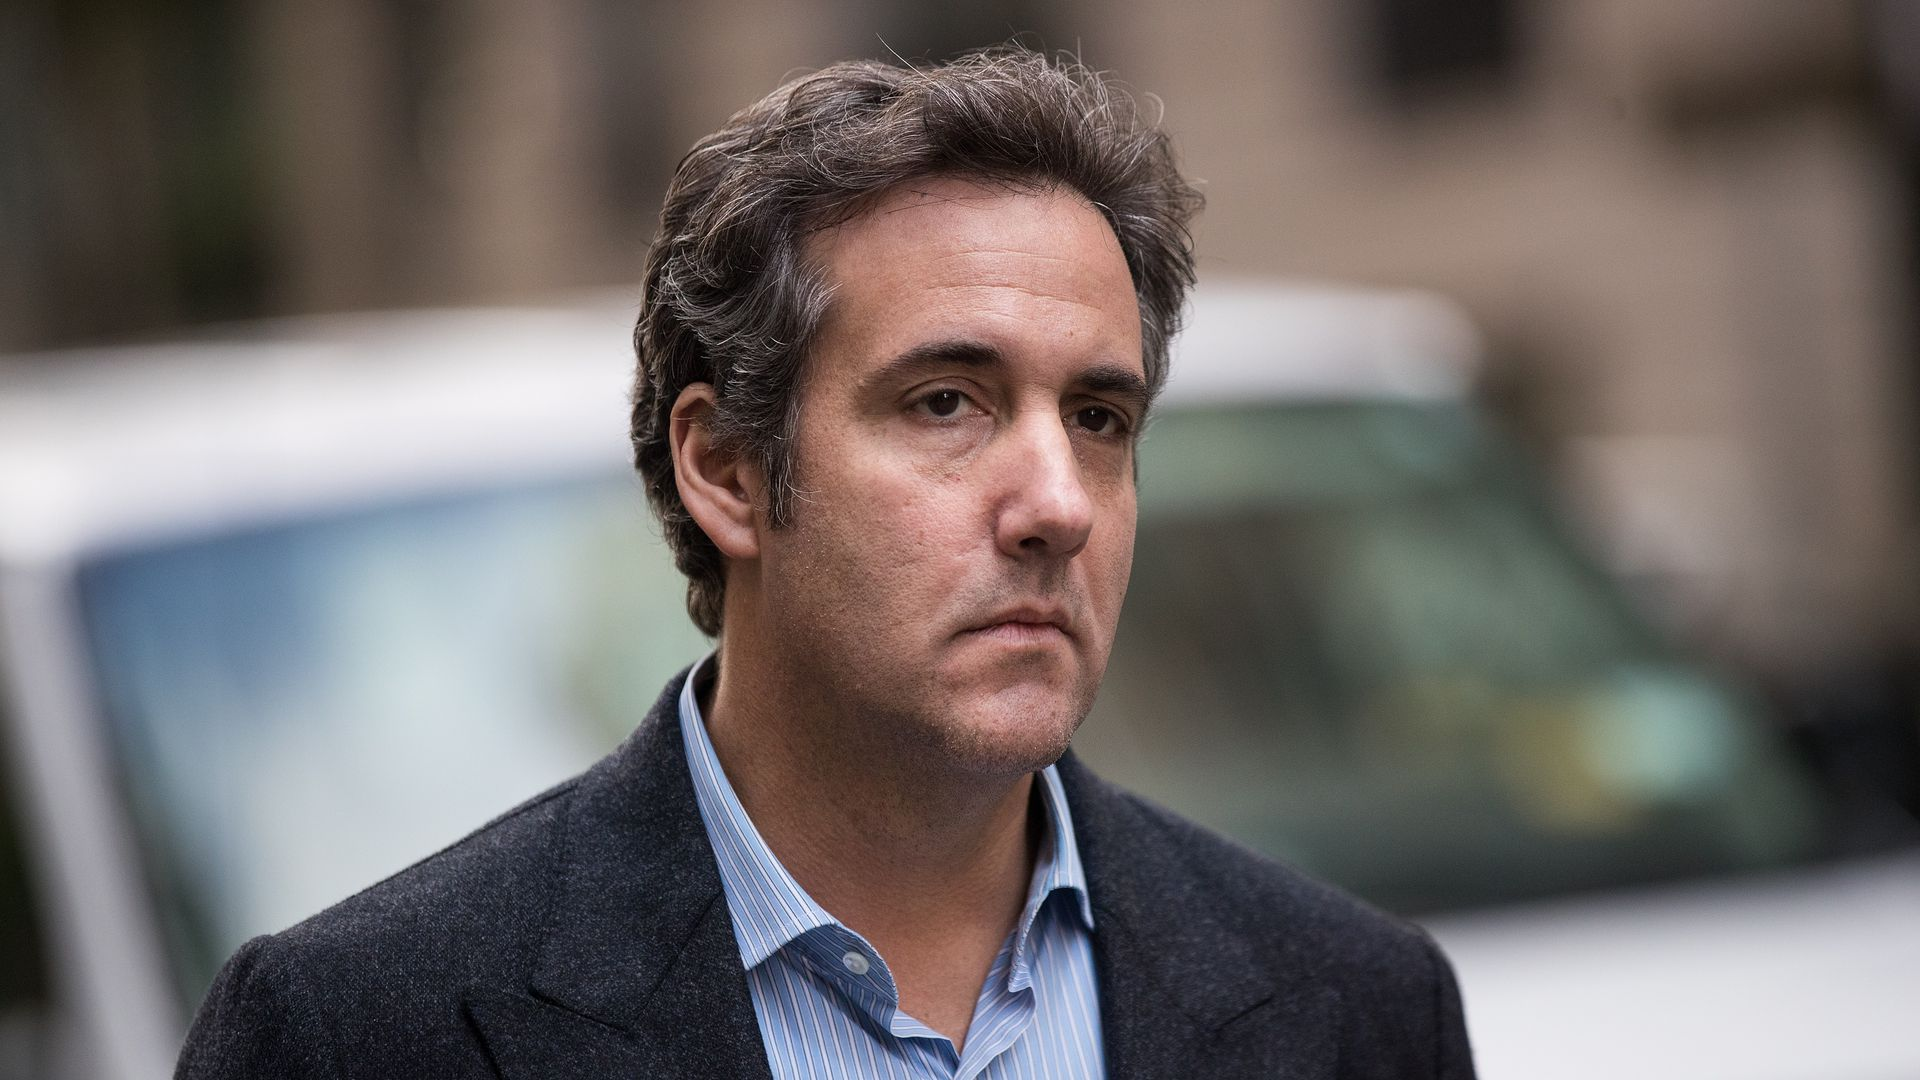 Trump attorney Michael Cohen